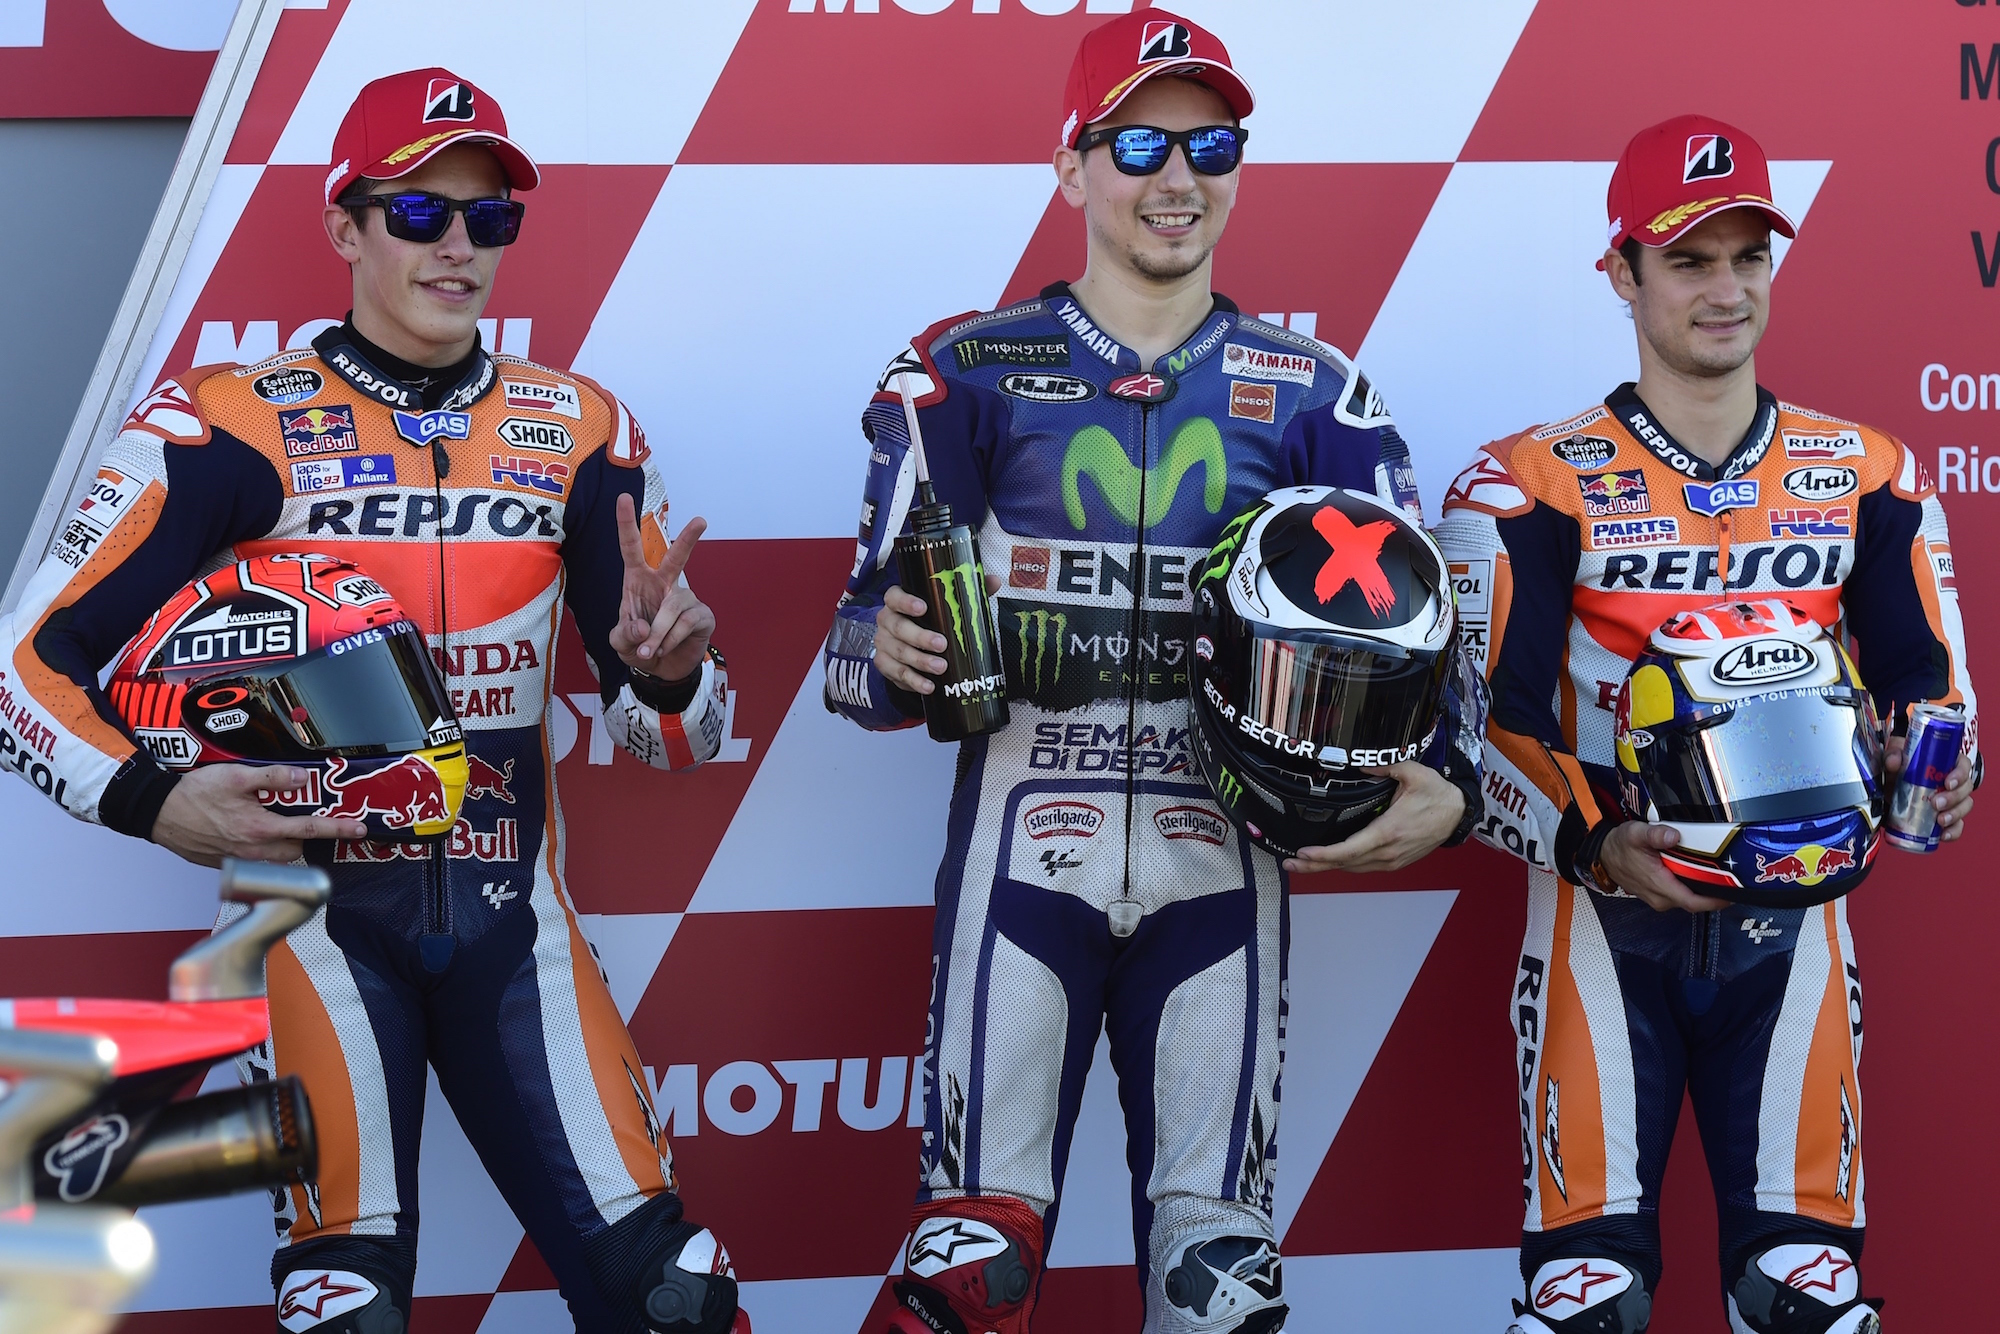 Repsol Honda's Spanish rider Marc Marquez (L), Movistar Yamaha's Spanish rider Jorge Lorenzo (C) and Repsol Honda's Spanish rider Dani Pedrosa pose after the MotoGP qualifying session on the eve of the Valencia Grand Prix at Ricardo Tormo racetrack in Cheste, near Valencia on November 7, 2015. AFP PHOTO/ JAVIER SORIANO (Photo credit should read JAVIER SORIANO/AFP/Getty Images)